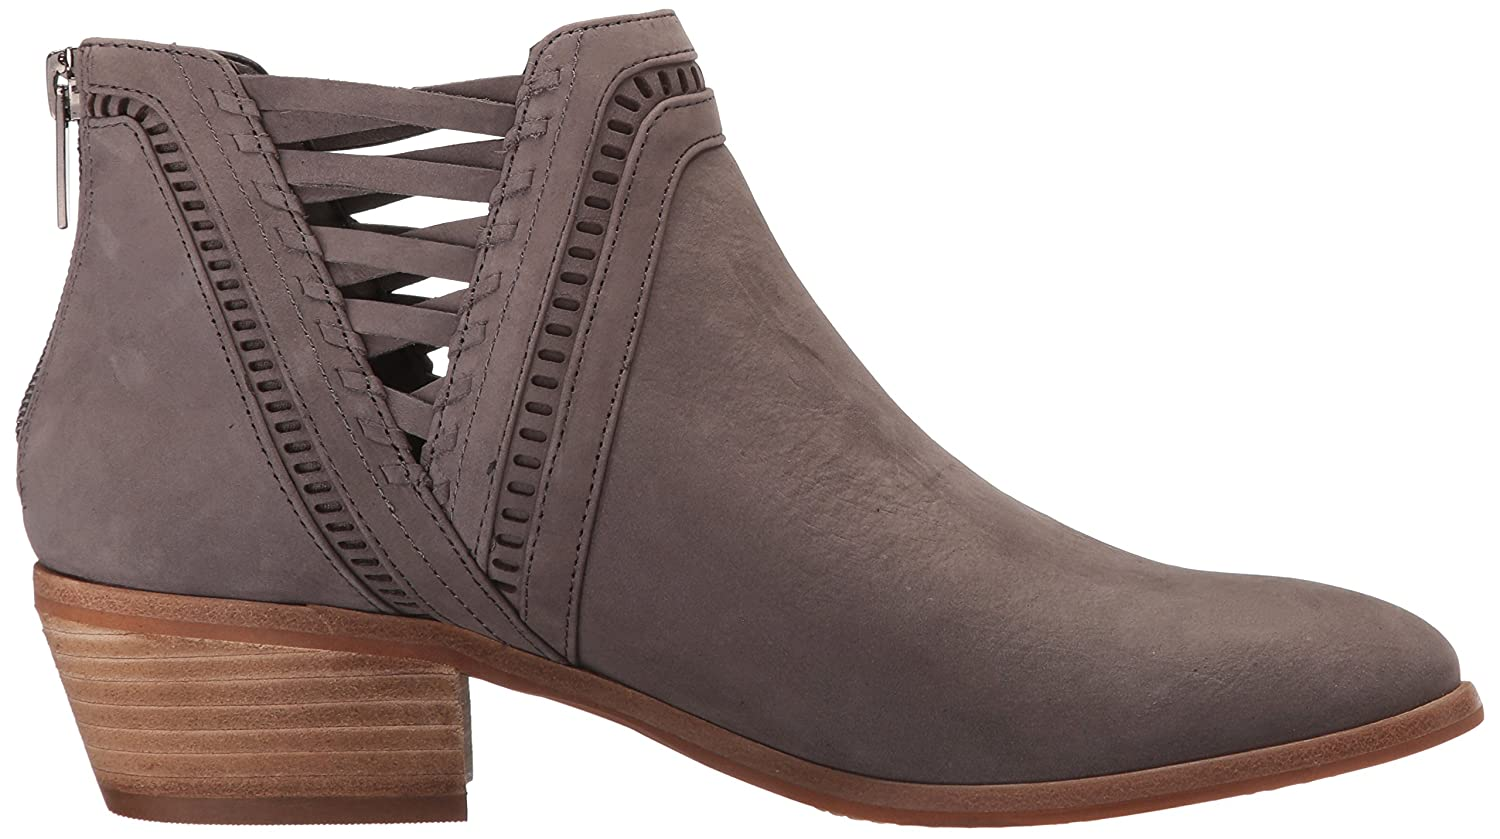 Vince Camuto Women's Pimmy Ankle Boot B07239J129 5.5 B(M) US Gray Stone